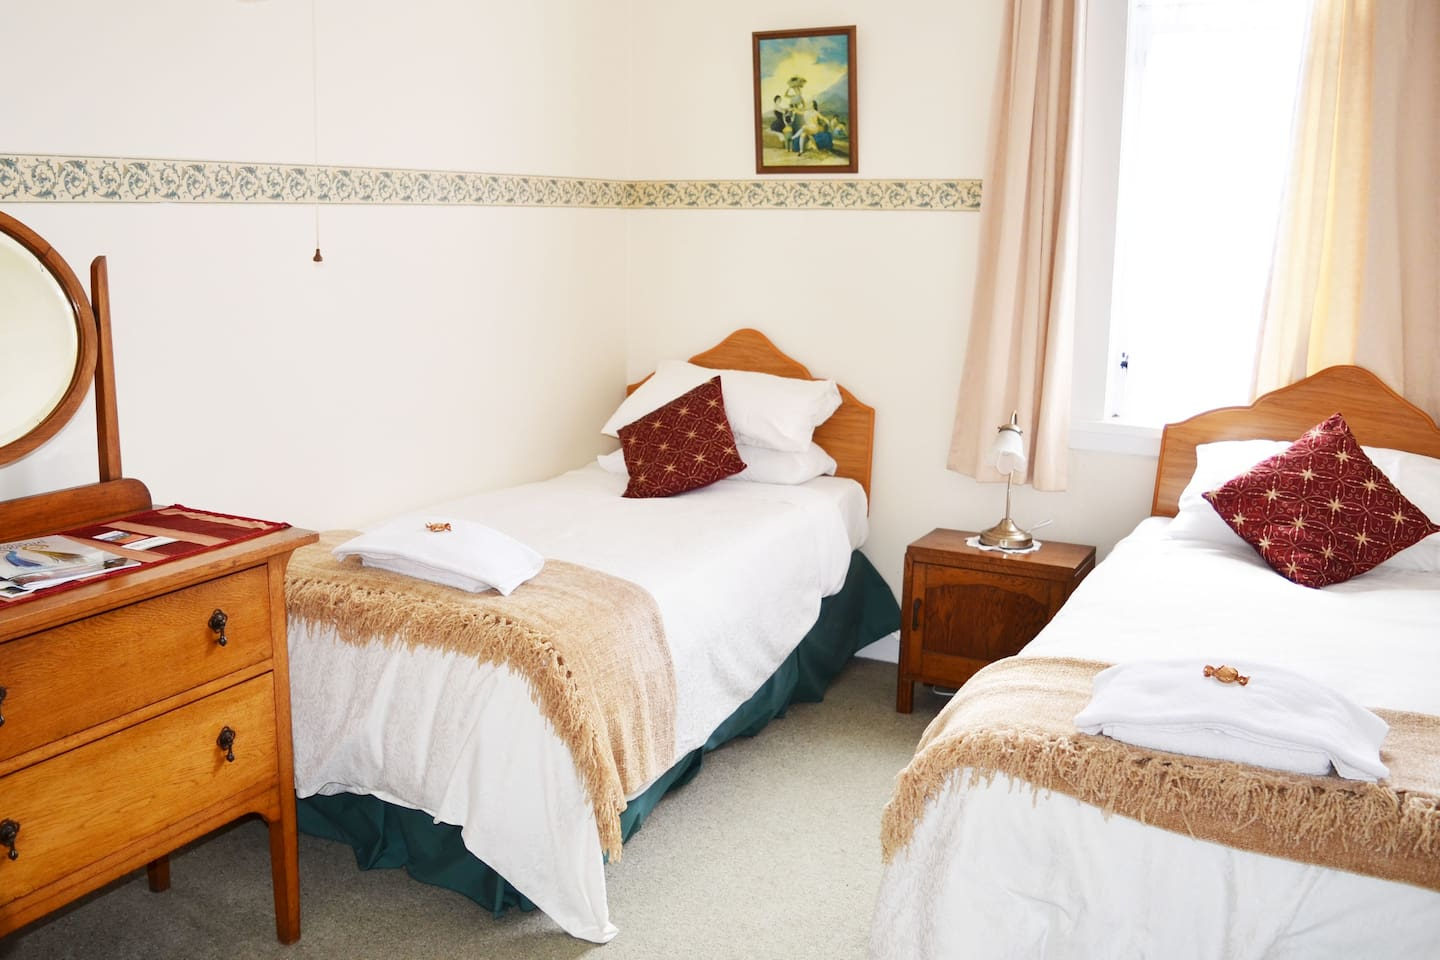 B&B Deluxe private twin room with shared bathroom facilities